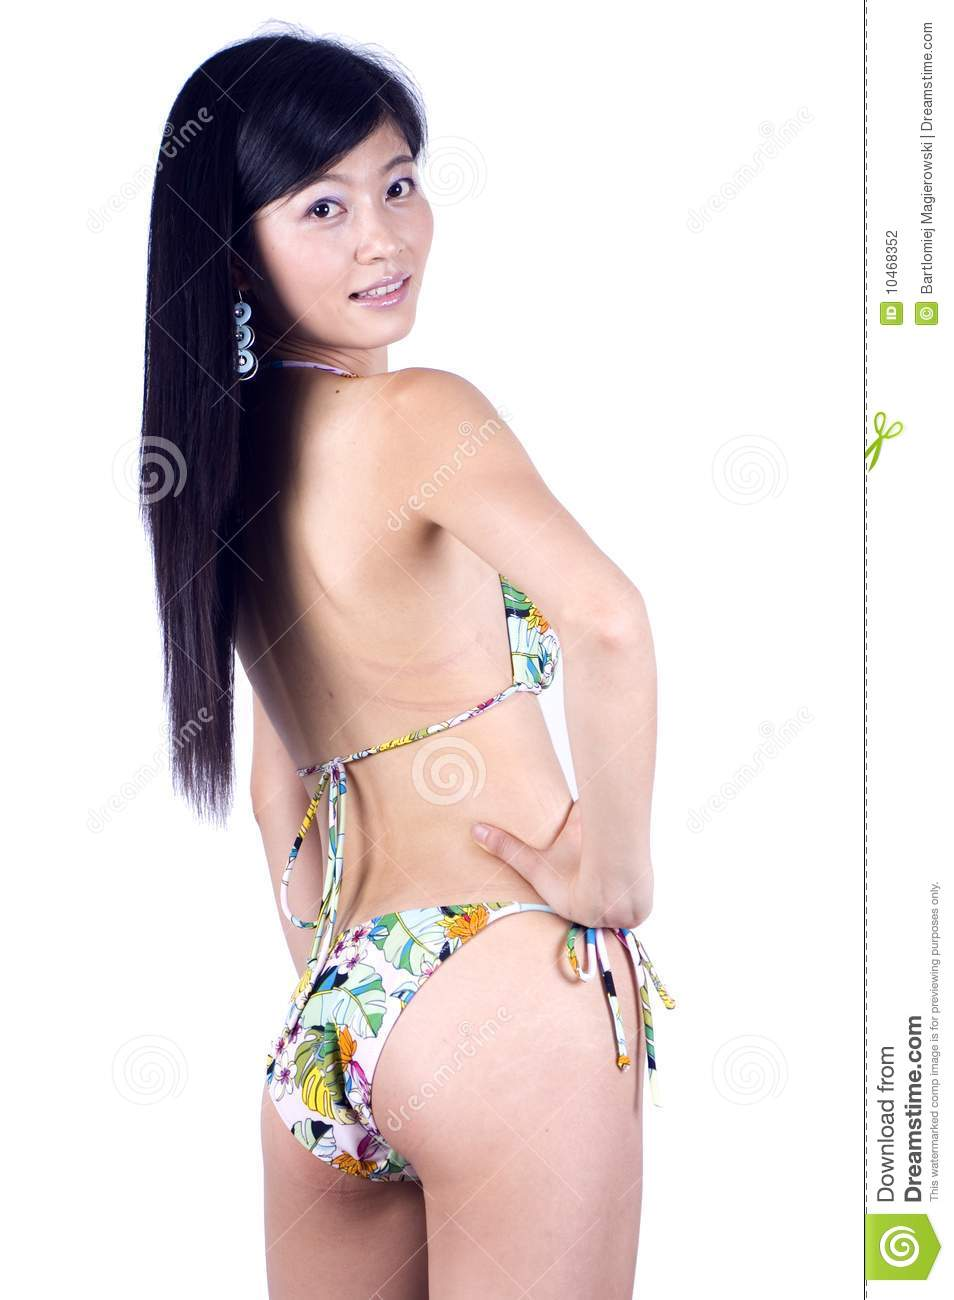 bikini Chinese asian girl